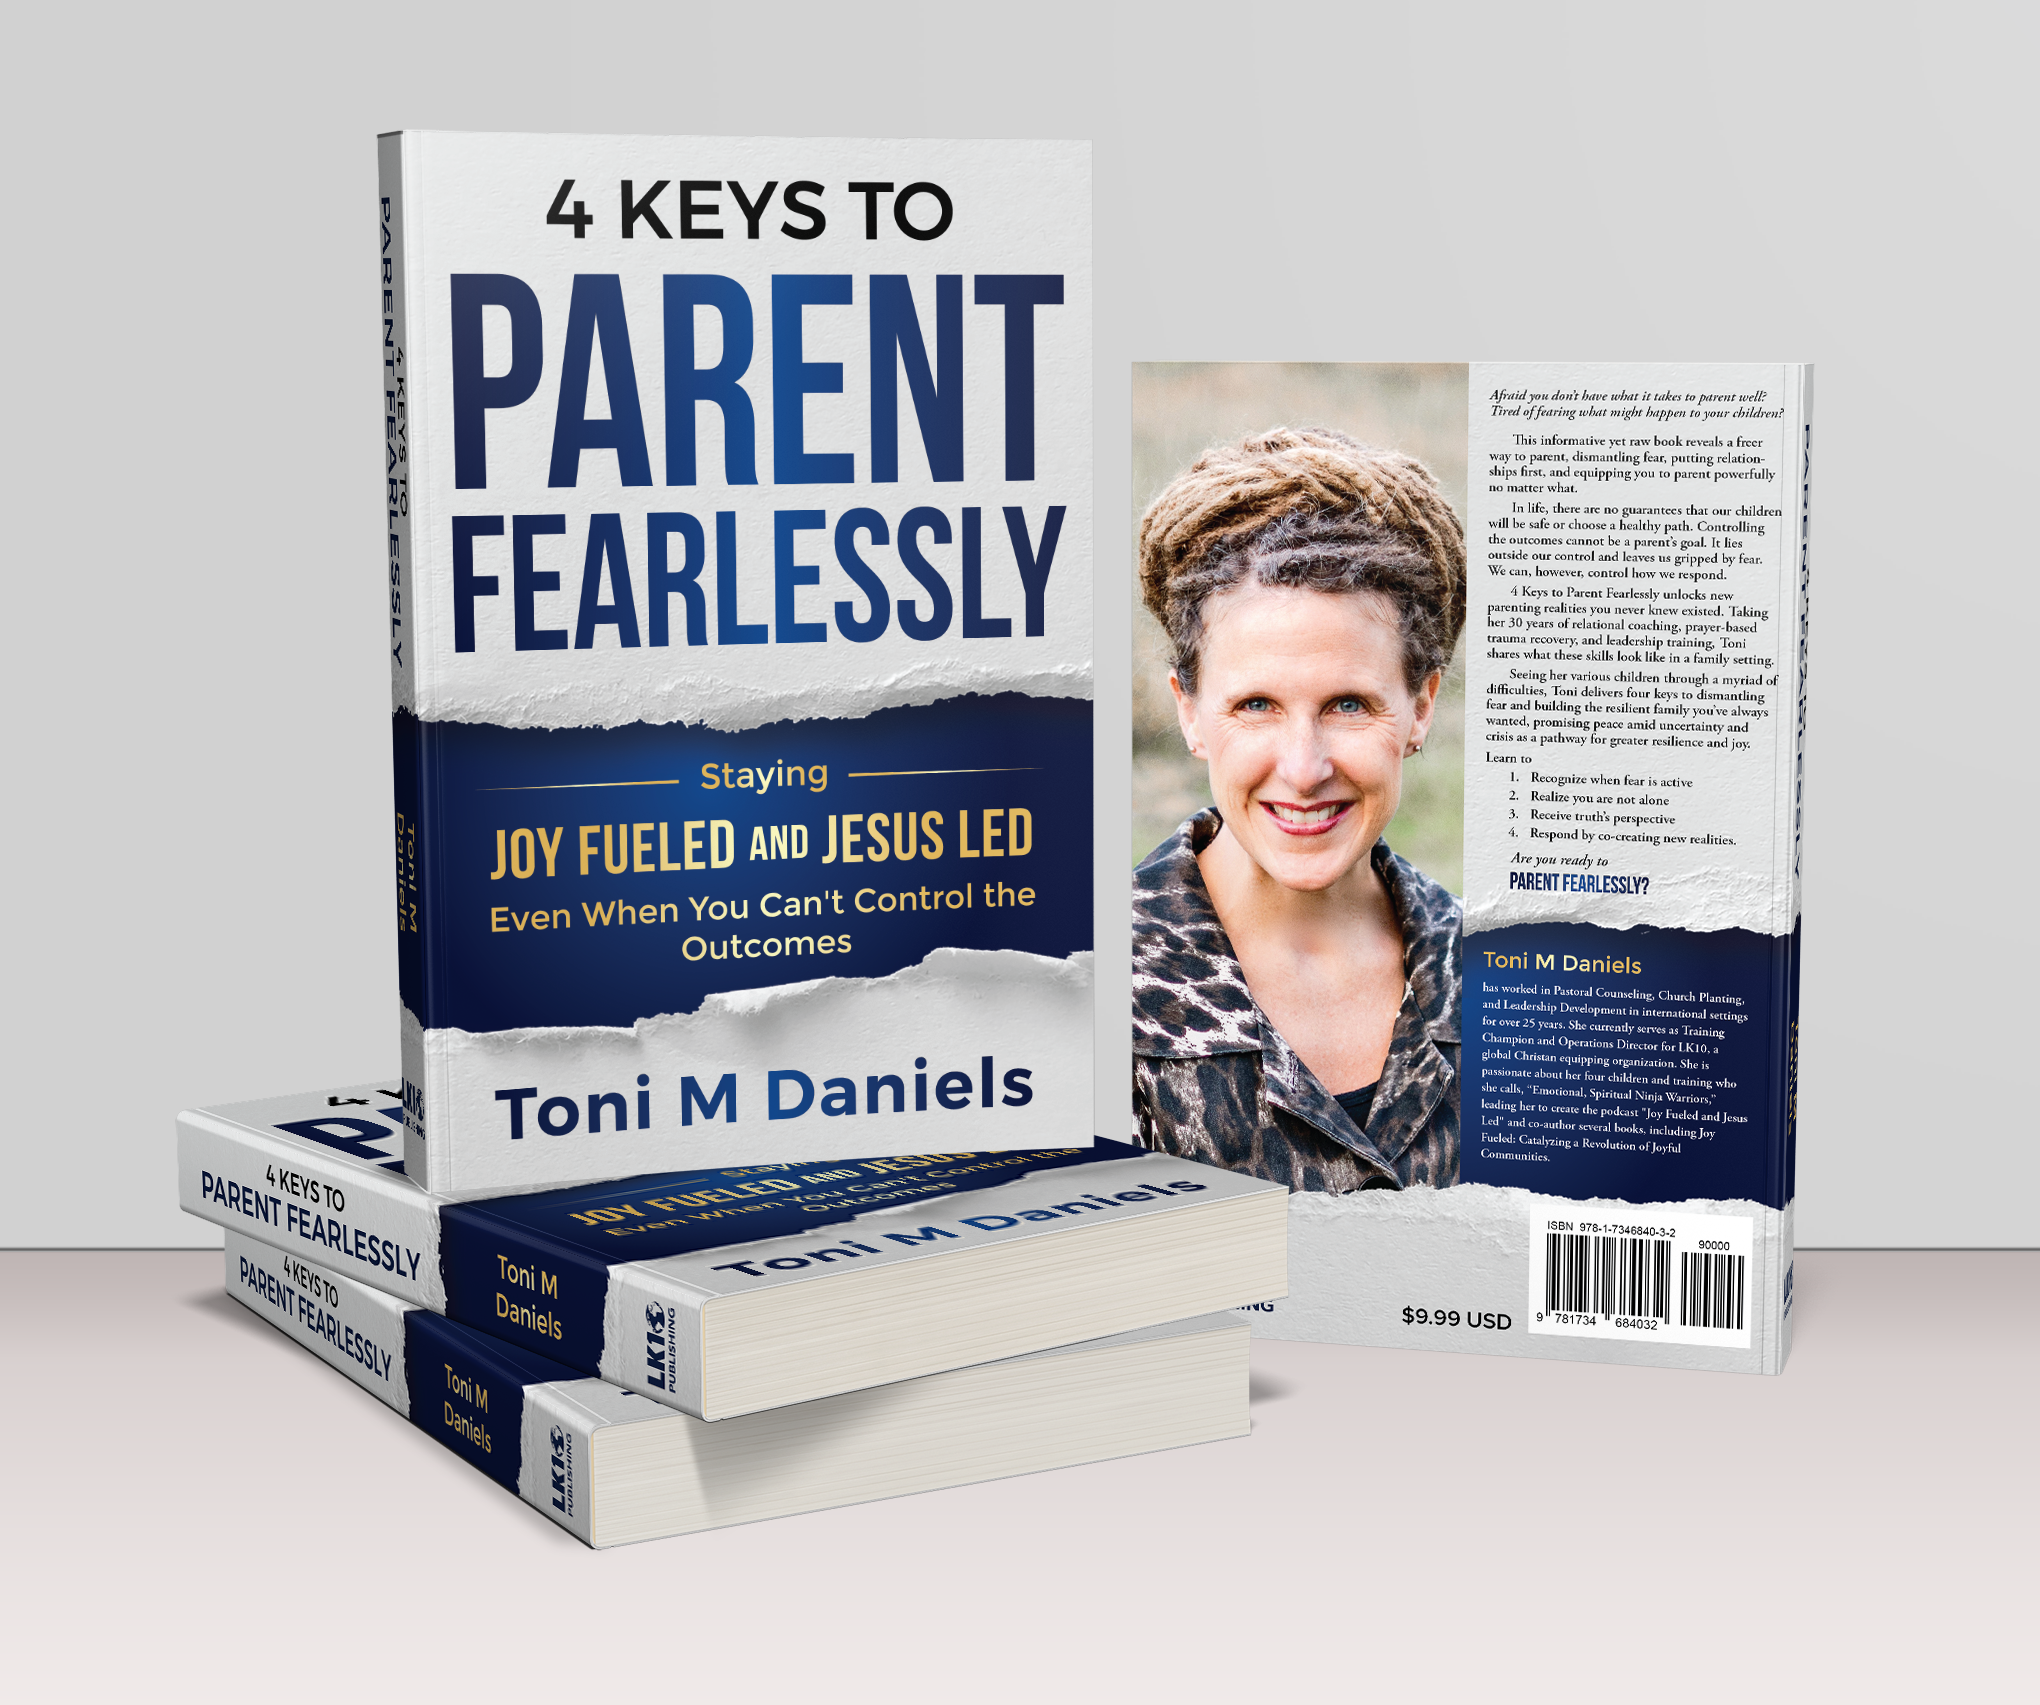 Risky, Parenting game-changer: Design the next best selling book cover!